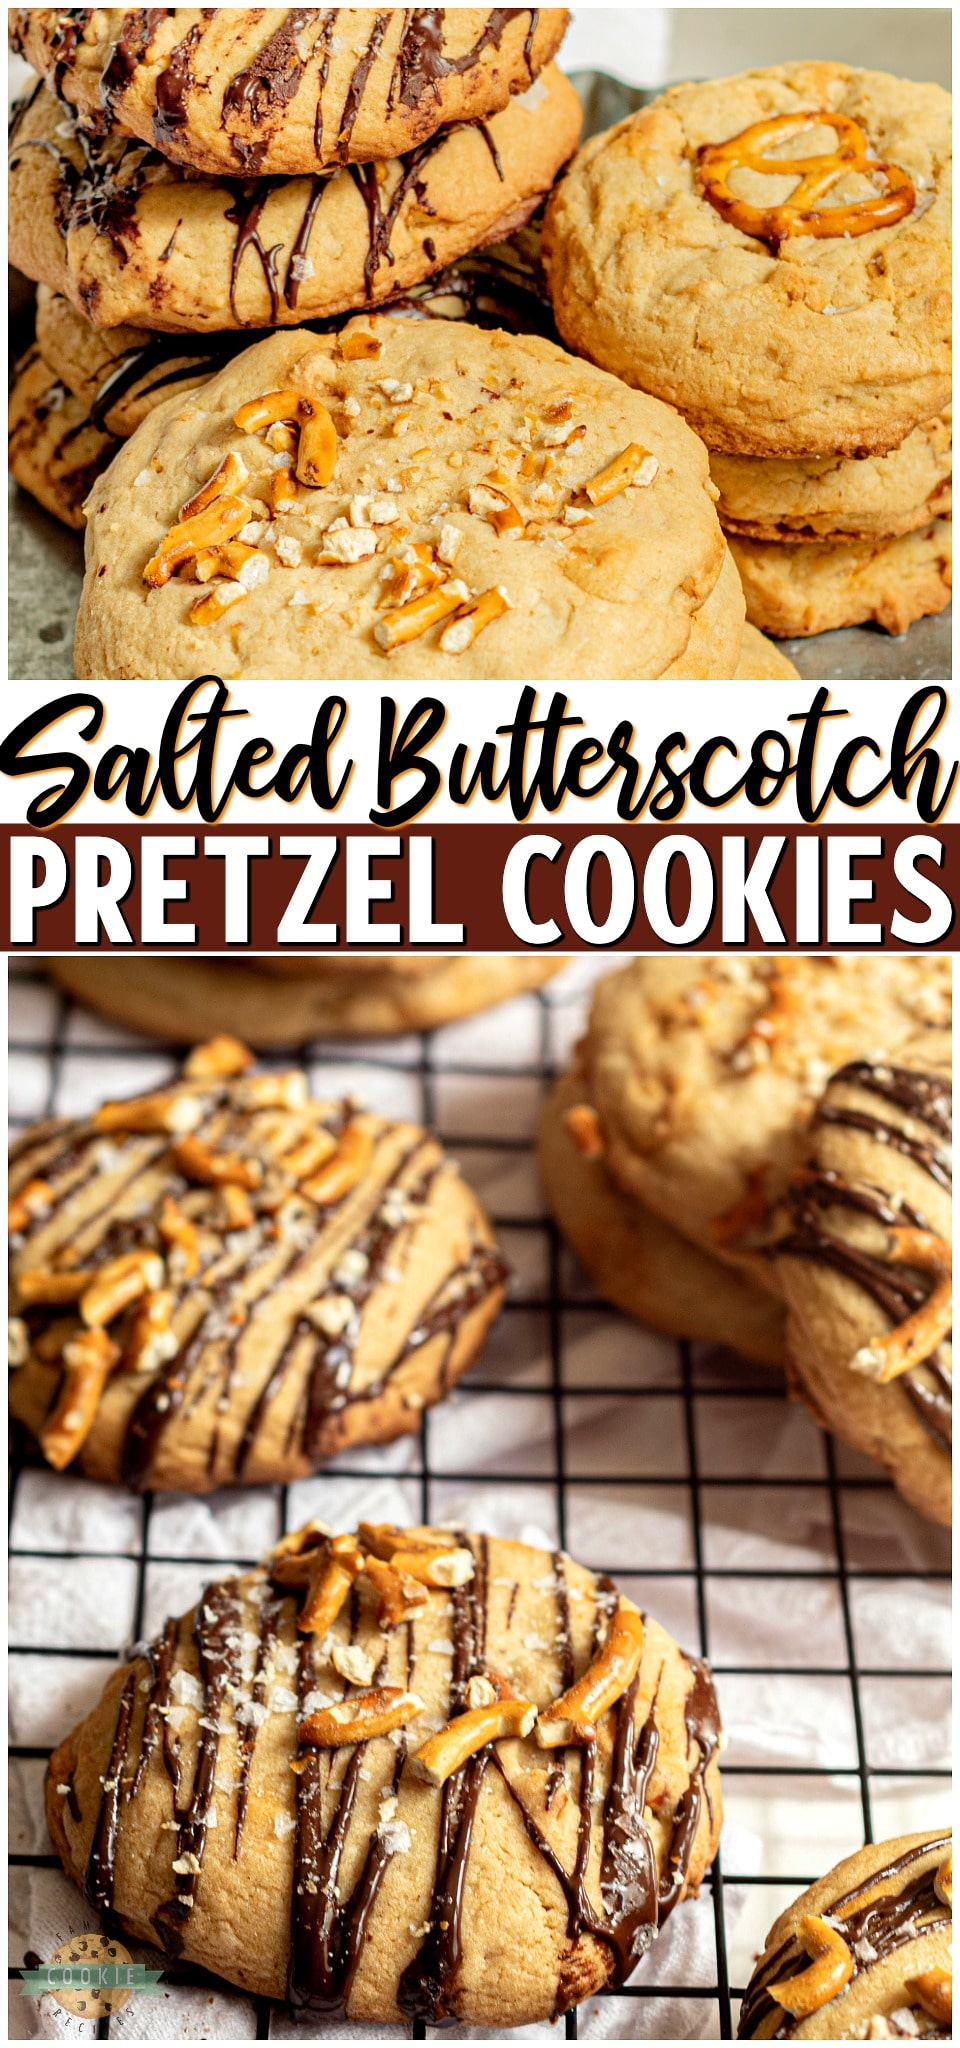 Sea Salt Butterscotch Pretzel Cookies are sweet and salty cookies that pack a little crunch and a whole lot of flavor! With sea salt, pretzels, butterscotch chips, and a chocolate drizzle these loaded cookies are a family favorite!